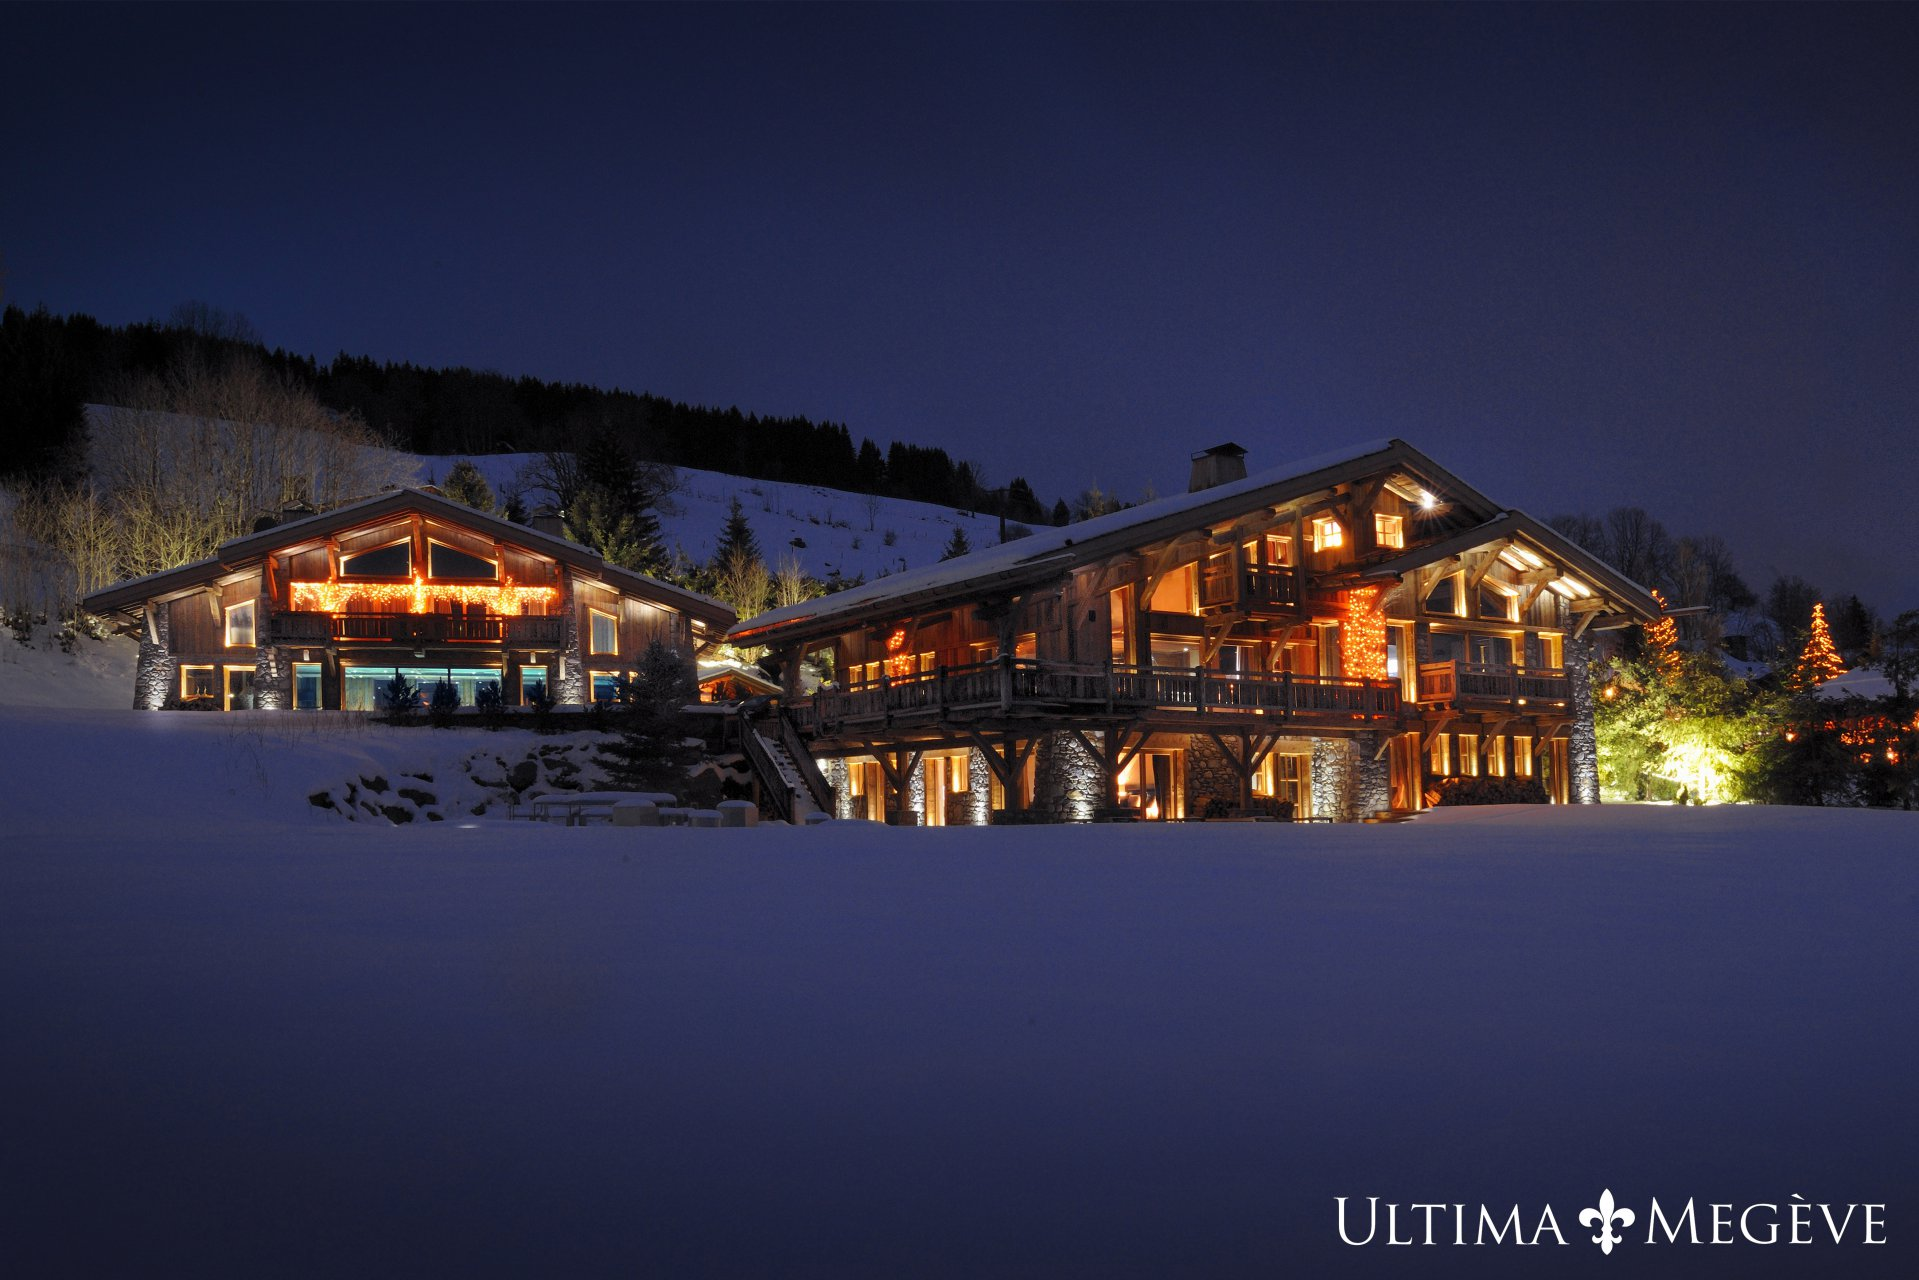 Ultima Chalet Chalet in Megeve